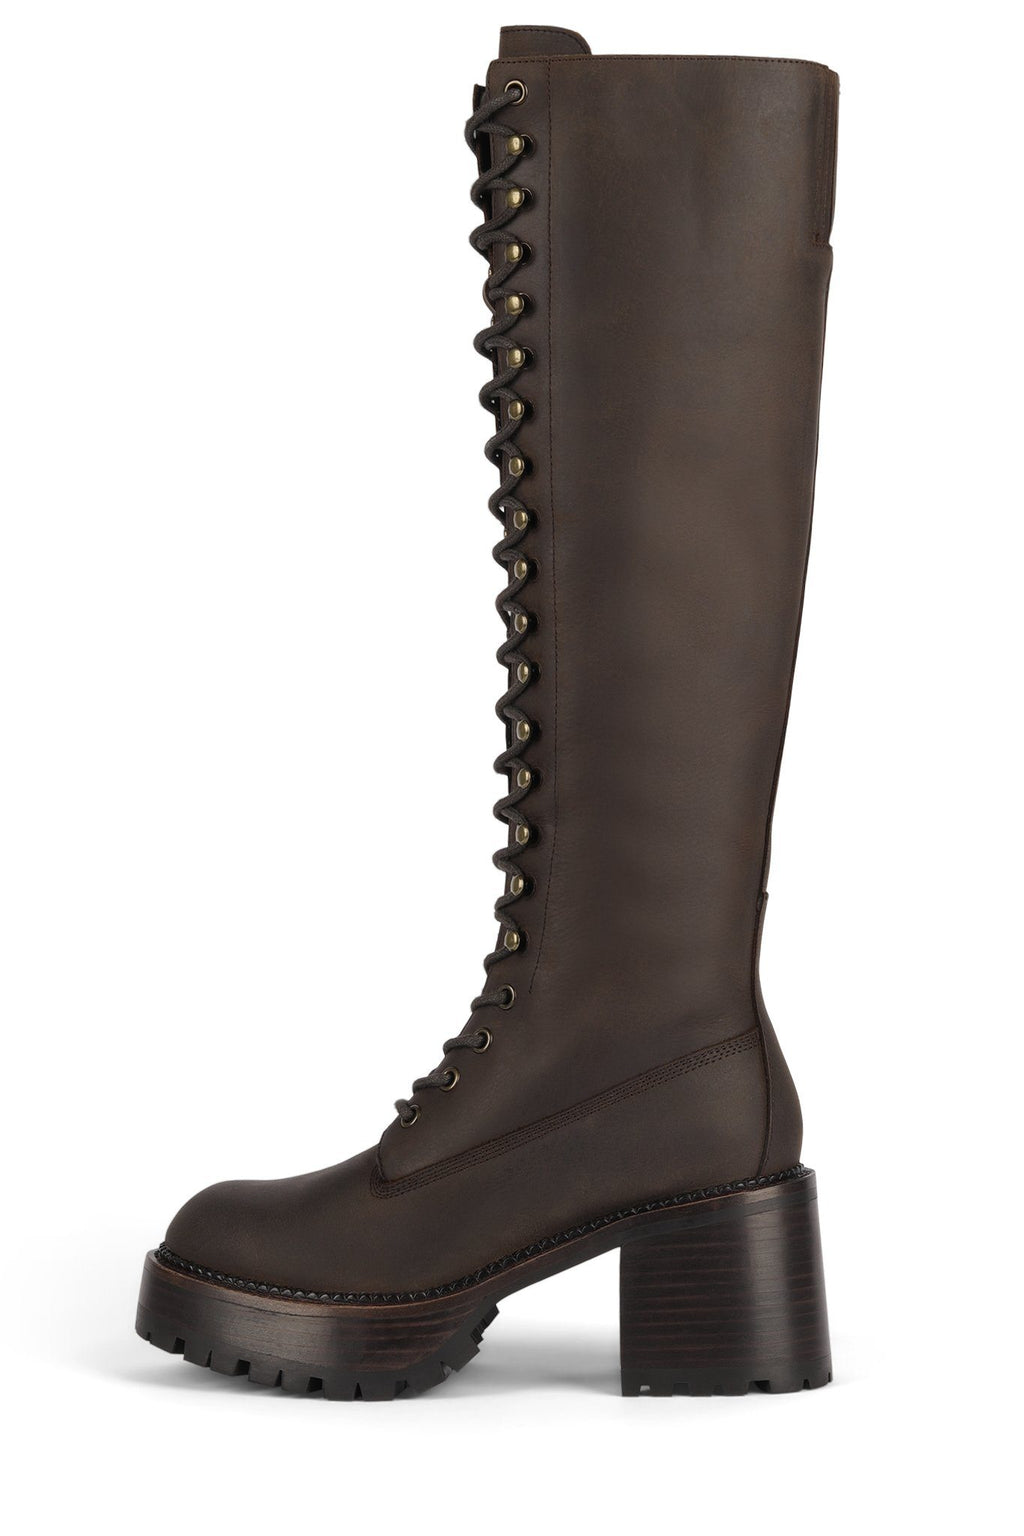 LOCUST-KH Knee-High Boot HS Dark Brown Crazy Horse 6